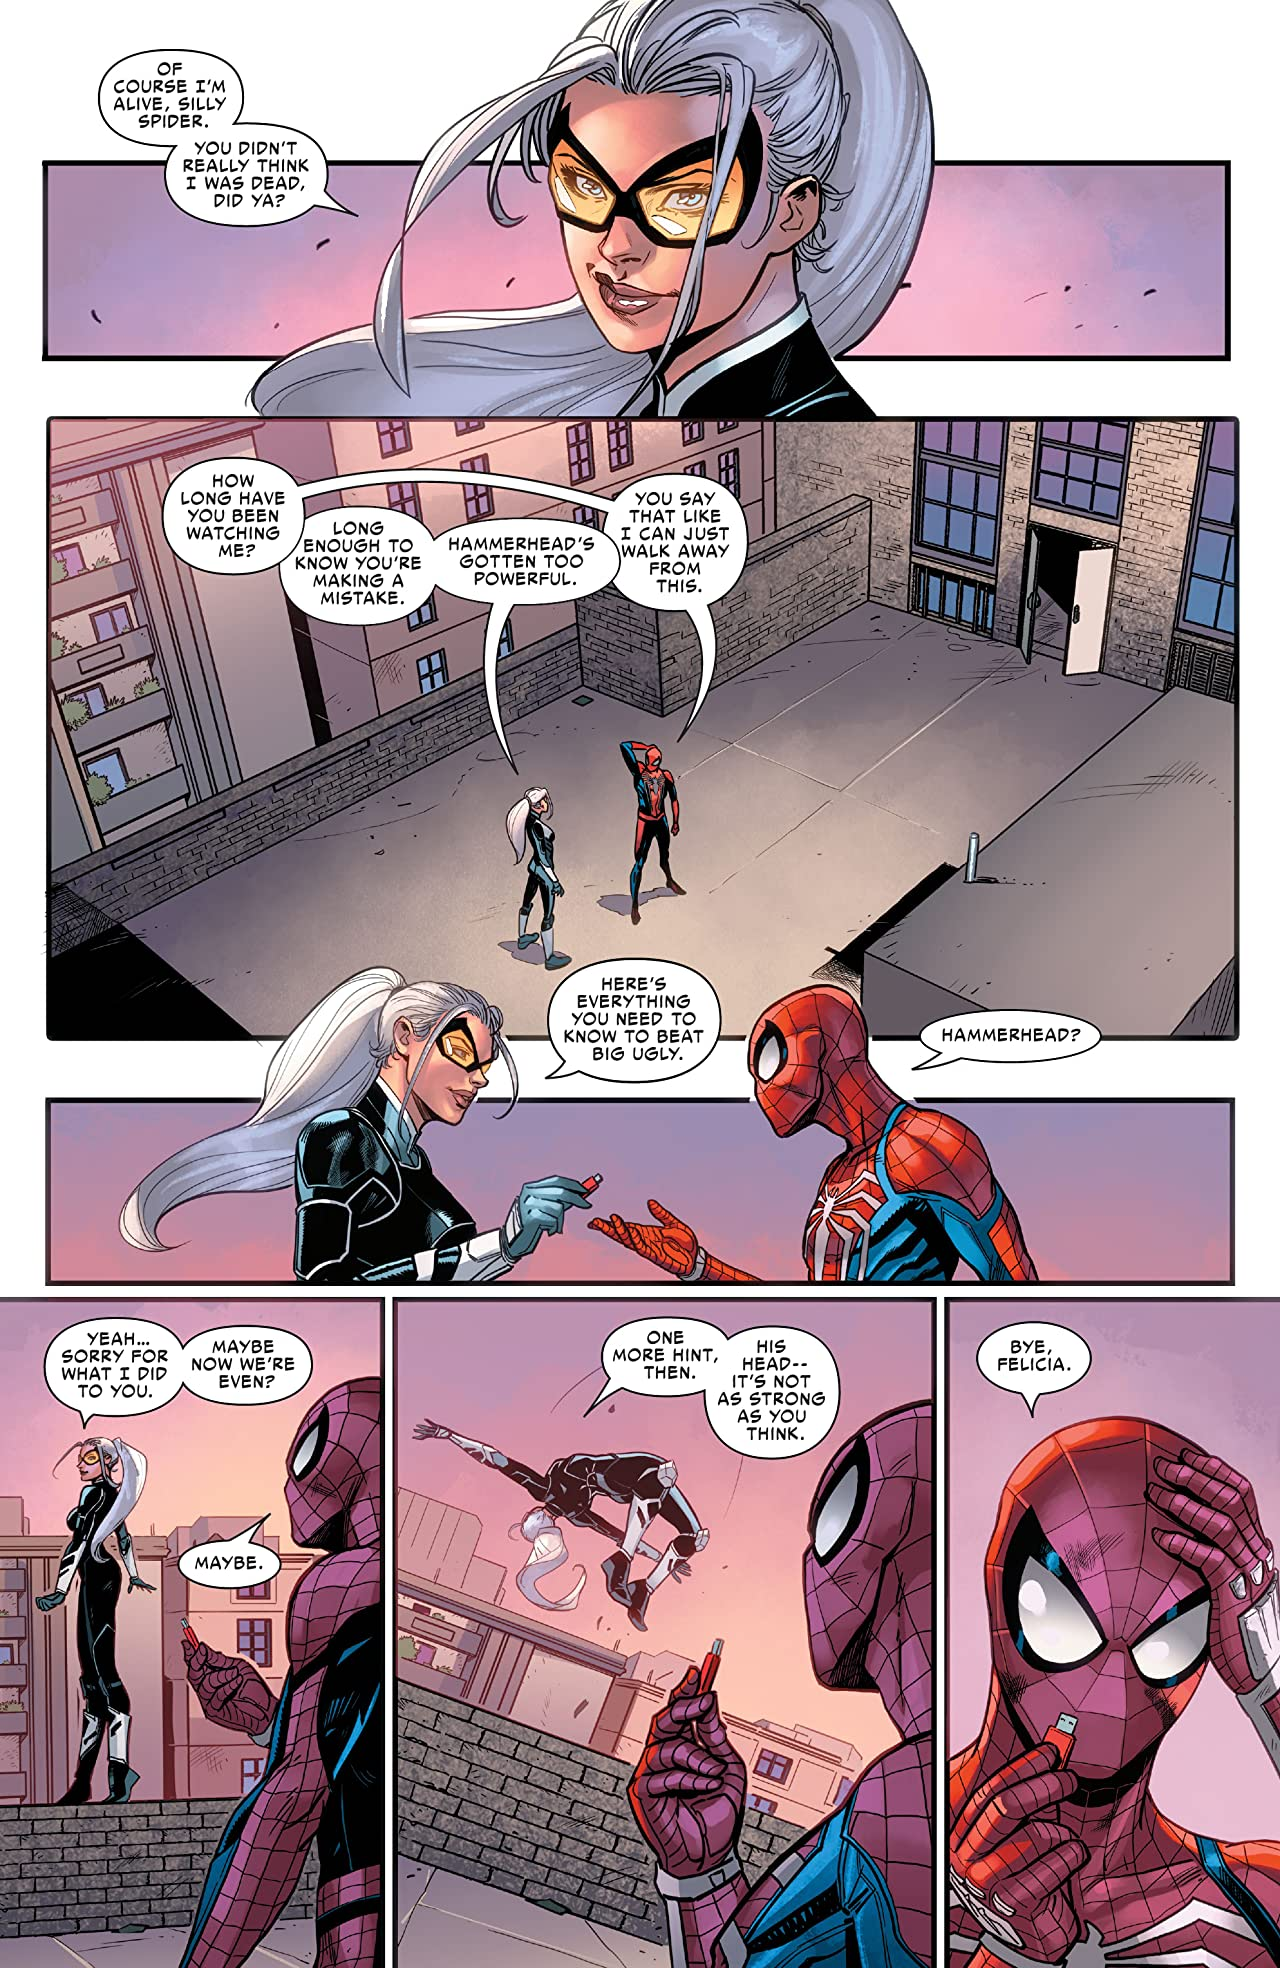 Marvel's Spider-Man: The Black Cat Strikes (2020) #5 (of 5)